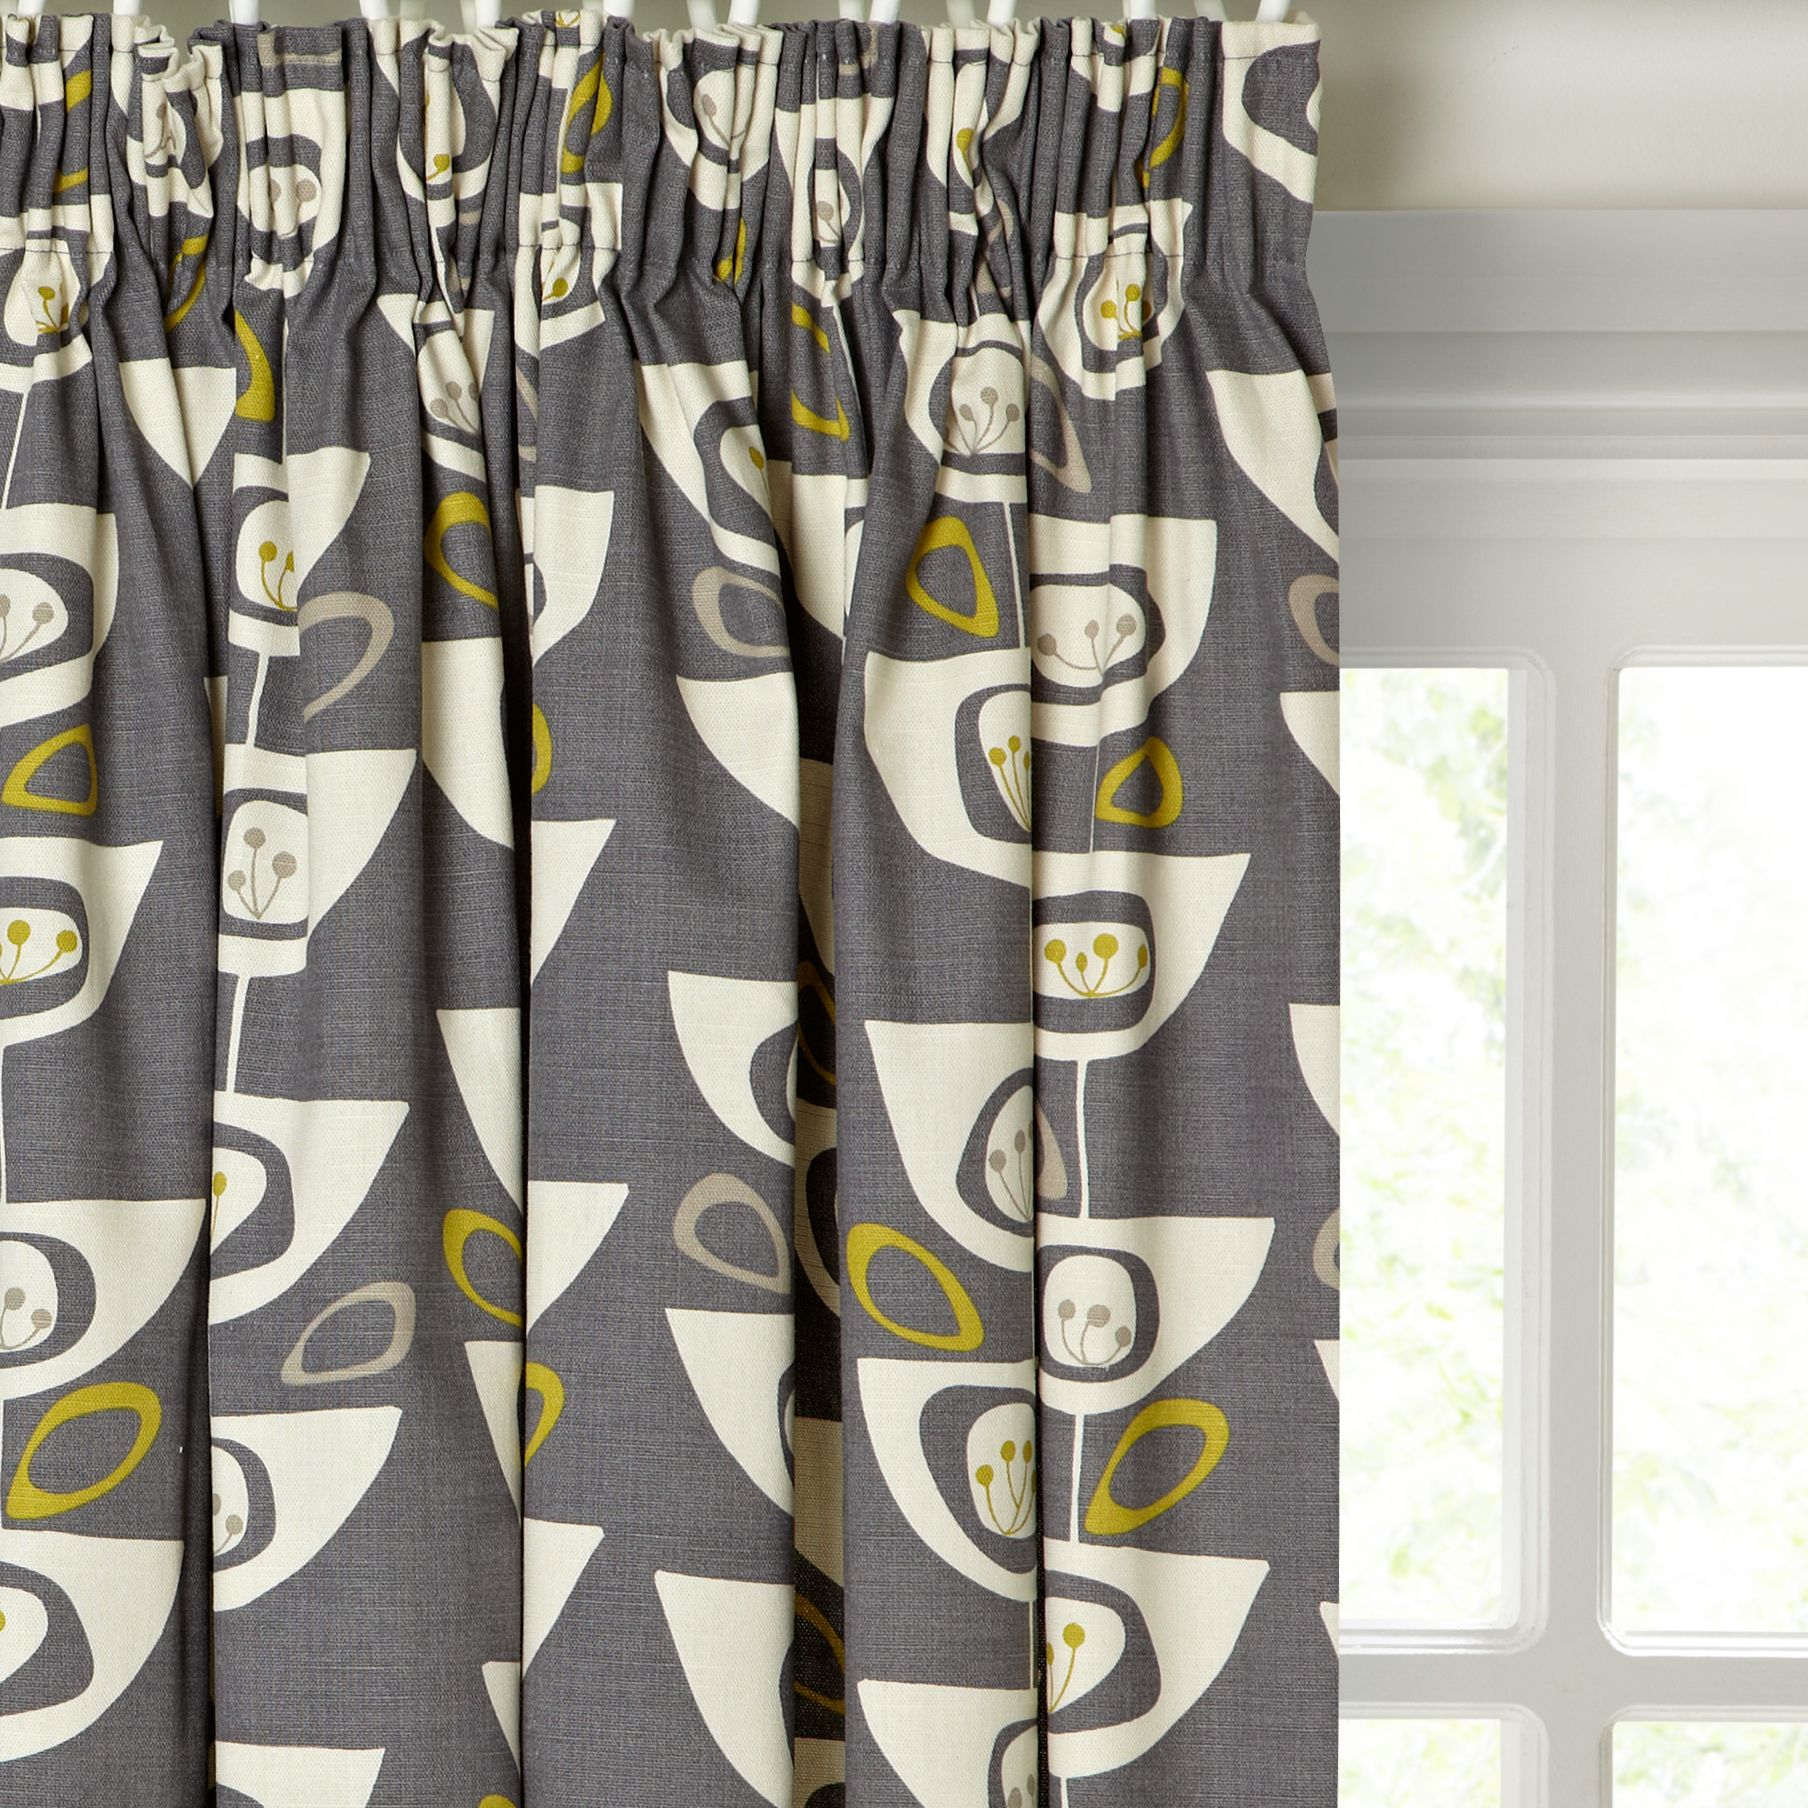 Grey and yellow curtains uk john lewis - John Lewis Nadia Linen Lined Pencil Pleat Curtains Compare Bluewater